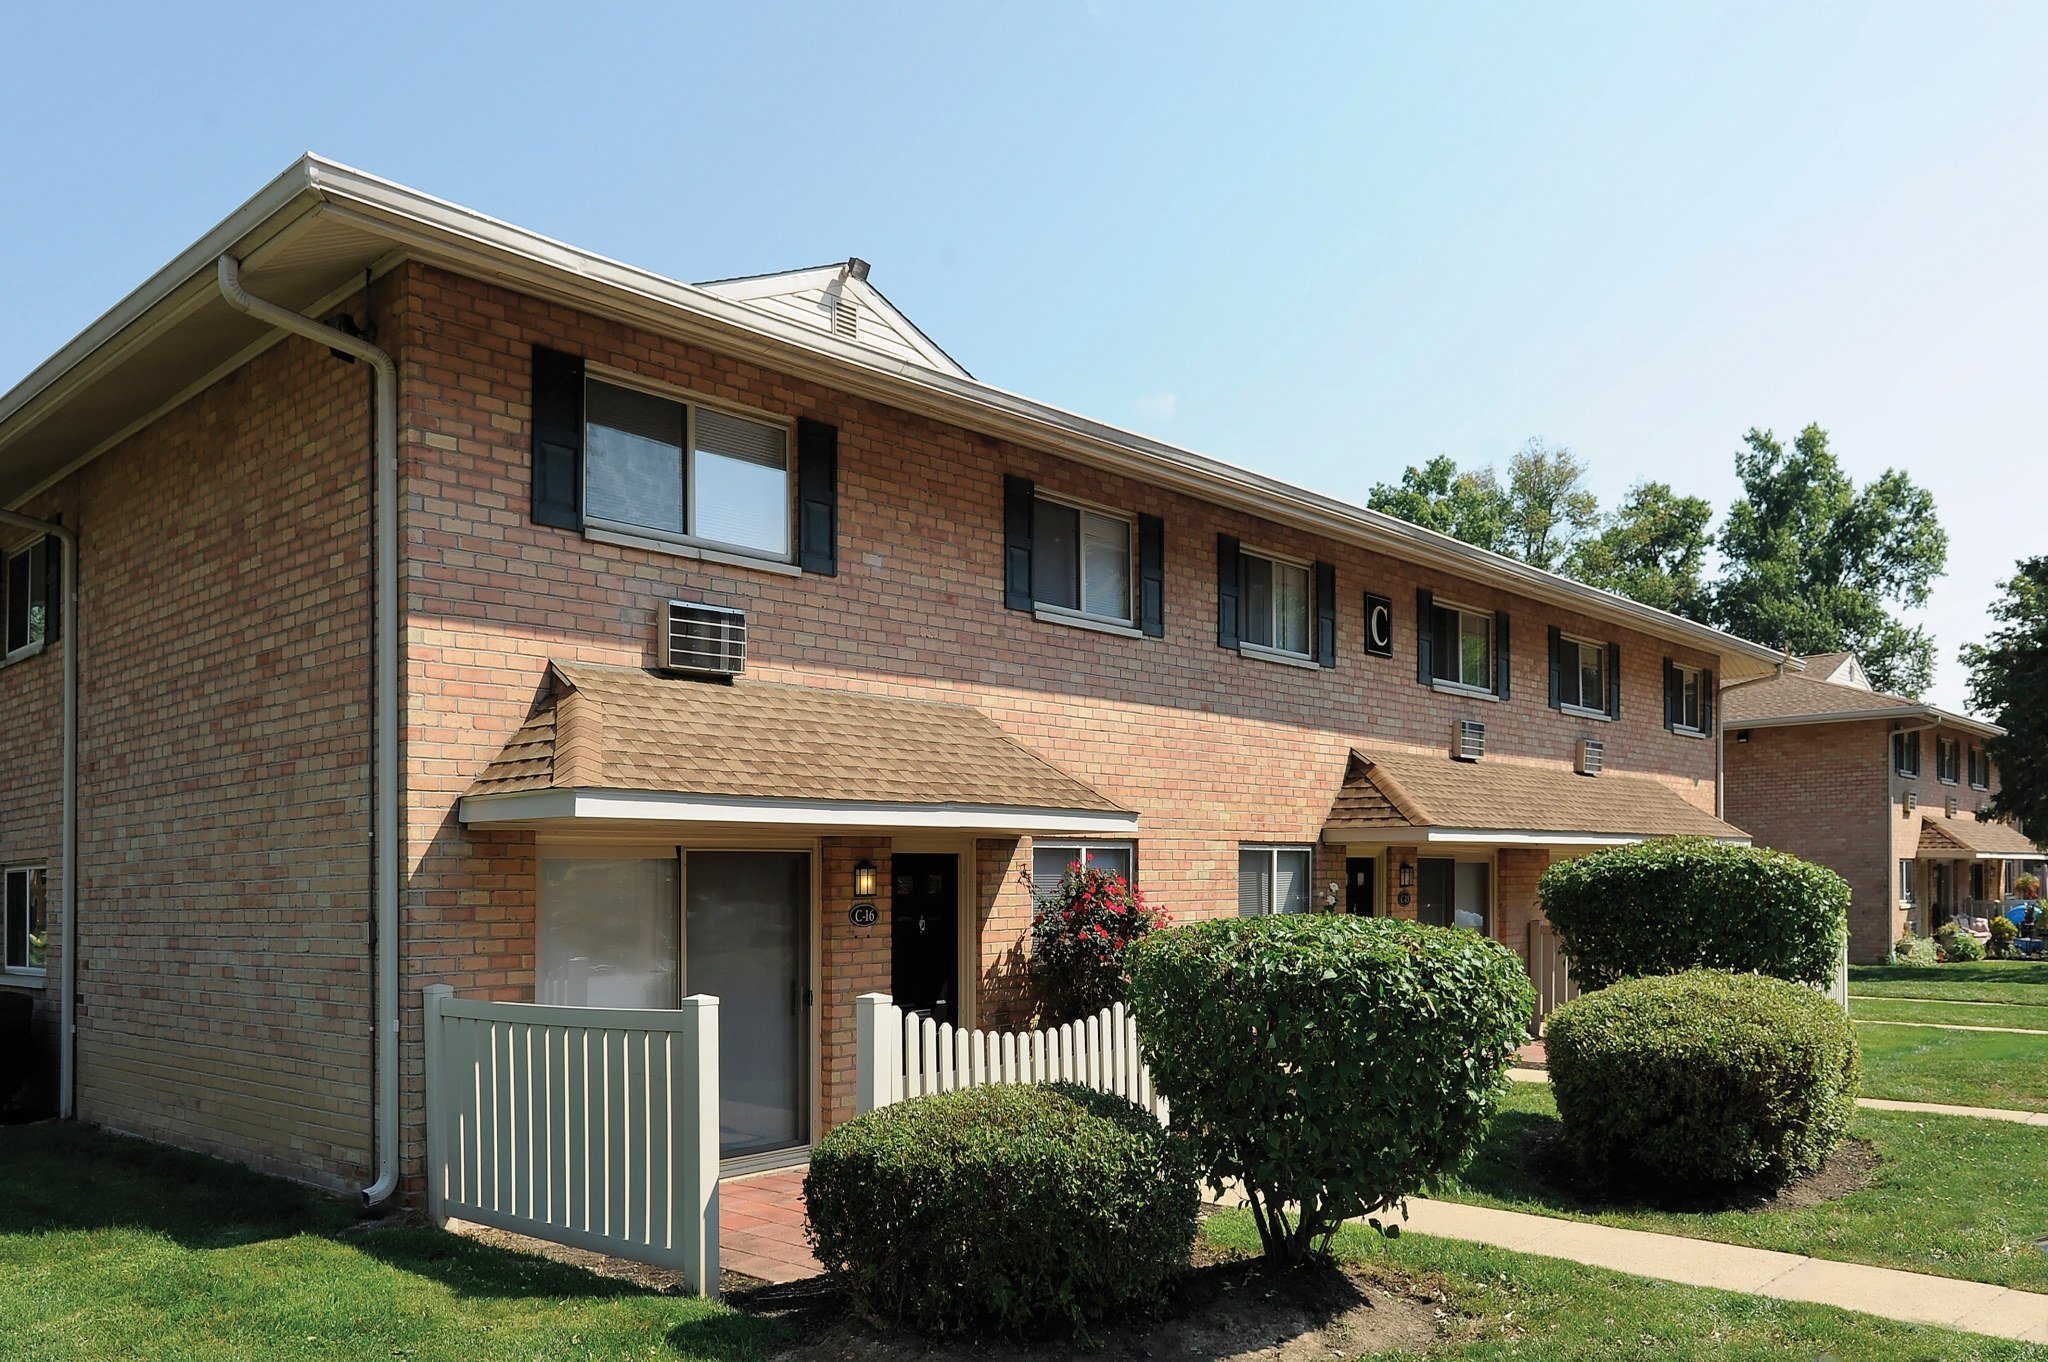 Golf Club Apartments  Townhomes - Golf Club Apartments in scenic West Chester, PA offer the finest in small-town living, with high-end amenities! Our two- and three-bedroom townhomes and one-bedroom apartments for rent are in the desirable West Chester School District